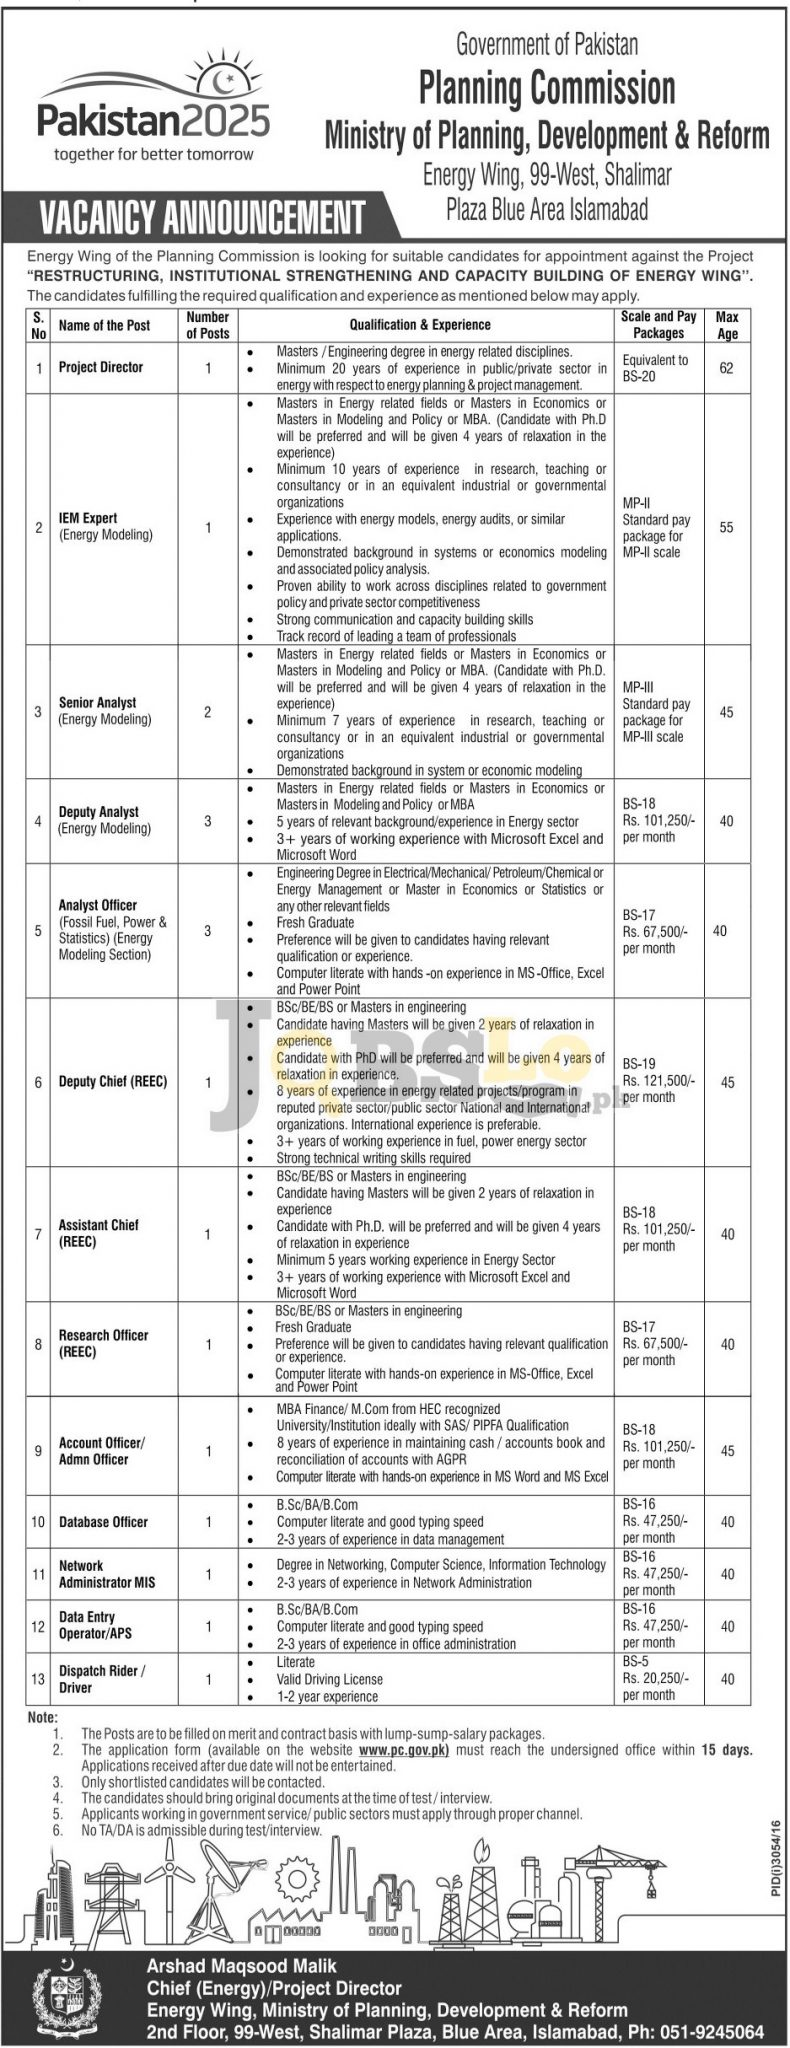 Planning Commission of Pakistan Jobs 2016-17 Application